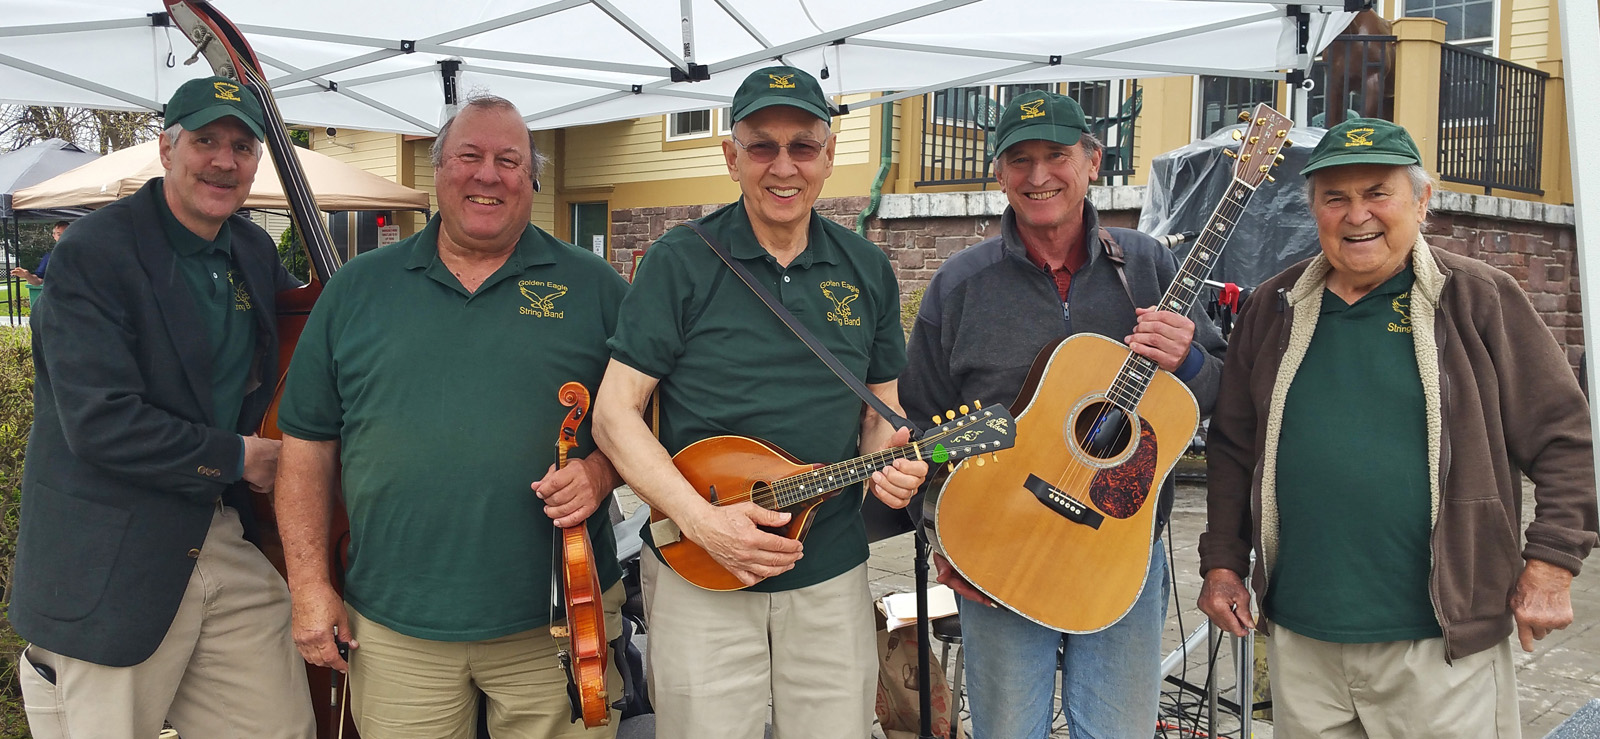 The Golden Eagle String Band is ready to perform at Brockport's Welcome Center, before the Low Bridge High Water Saturday events in May.  (L to r) Ted Sherwood, bass; Dwight Garrow, fiddle; Mike Mumford, mandolin; Eric Carlson, guitar; and, Bill Hullfish, tin whistle. Mike Mumford has been with the band for 38 years, since it began. The newest member is Ted Sherwood who has been with the band 12 years.  Photo by Dianne Hickerson